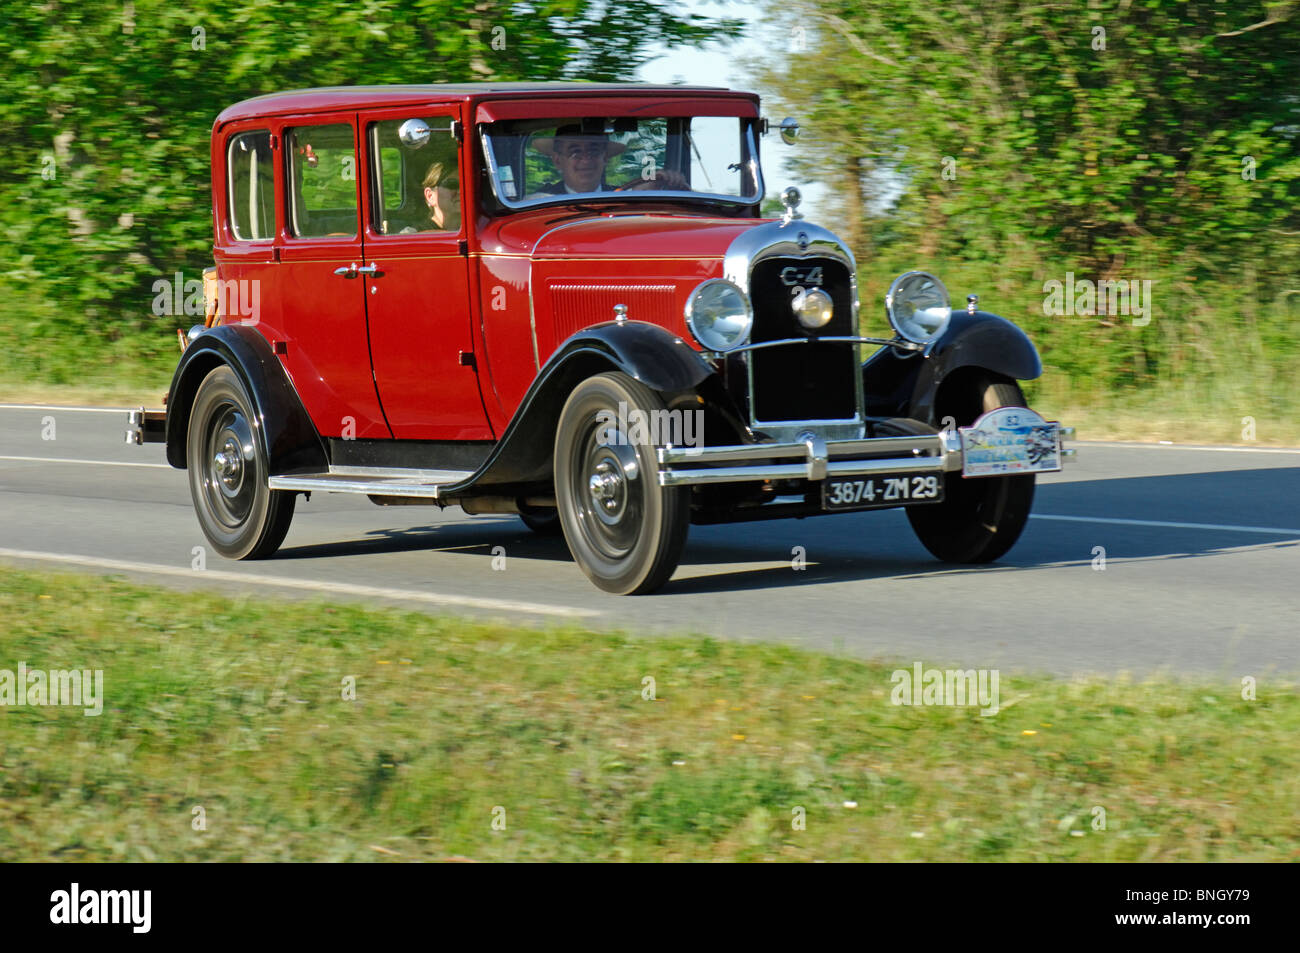 citroen ac4 limousine 1930 in the tour de bretagne classic car stock photo royalty free image. Black Bedroom Furniture Sets. Home Design Ideas